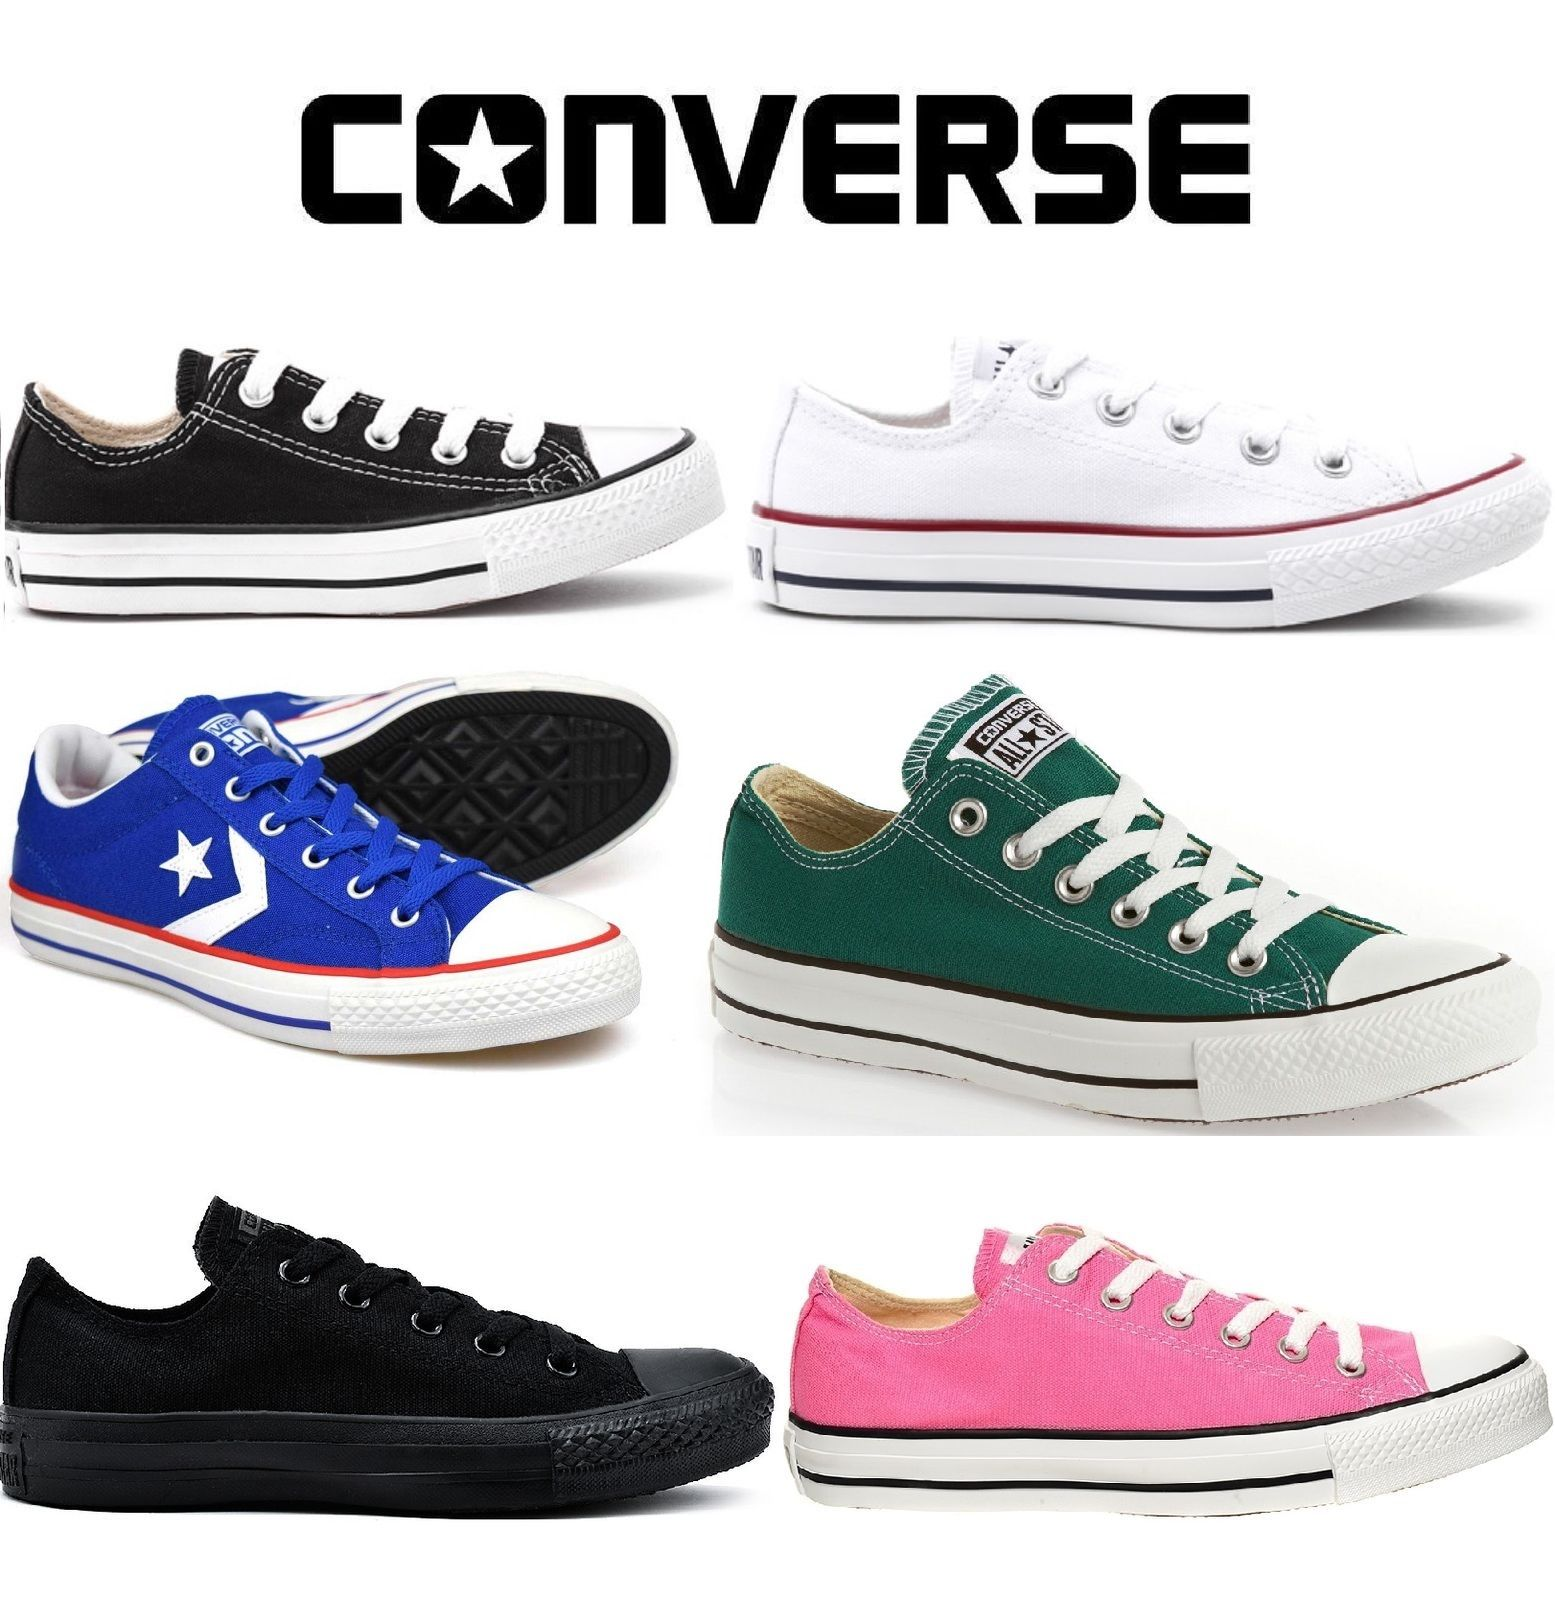 Converse Classic Classic Converse Chuck Taylor Low Trainer Sneaker All Star OX NEW talla Zapatos 20b462